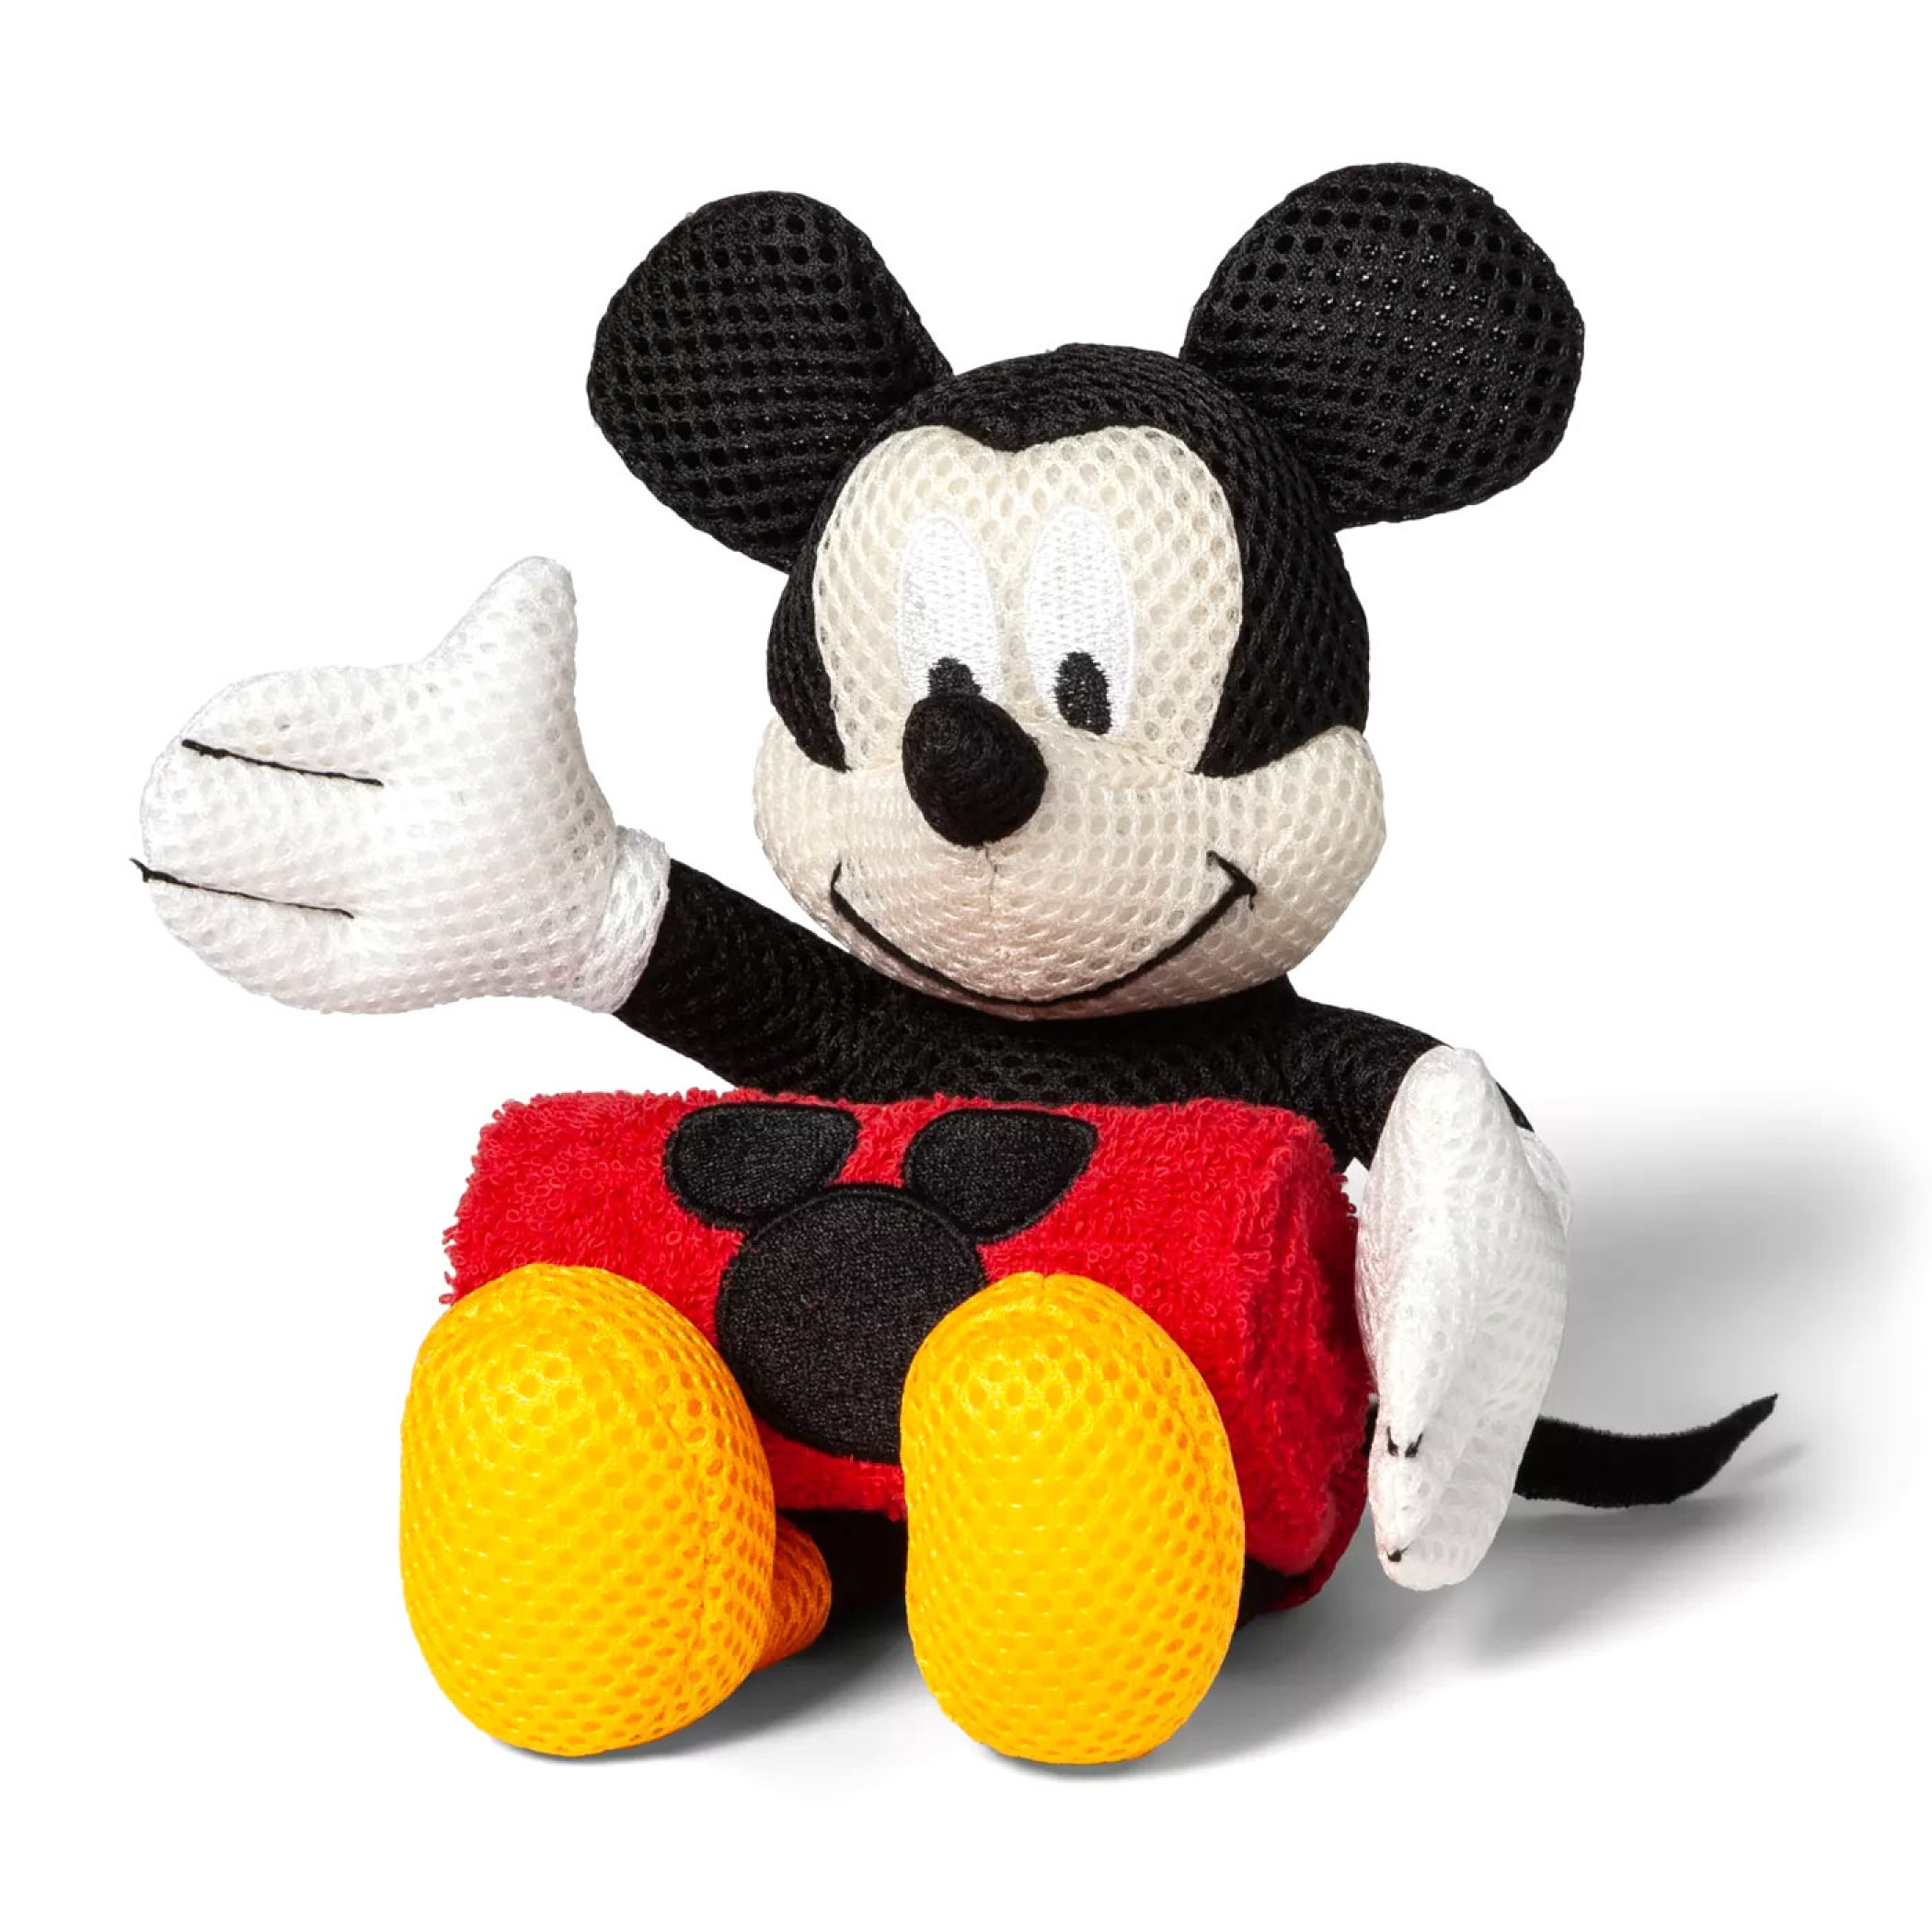 Disney Mickey Mouse Wash Cloth and Bath Buddy